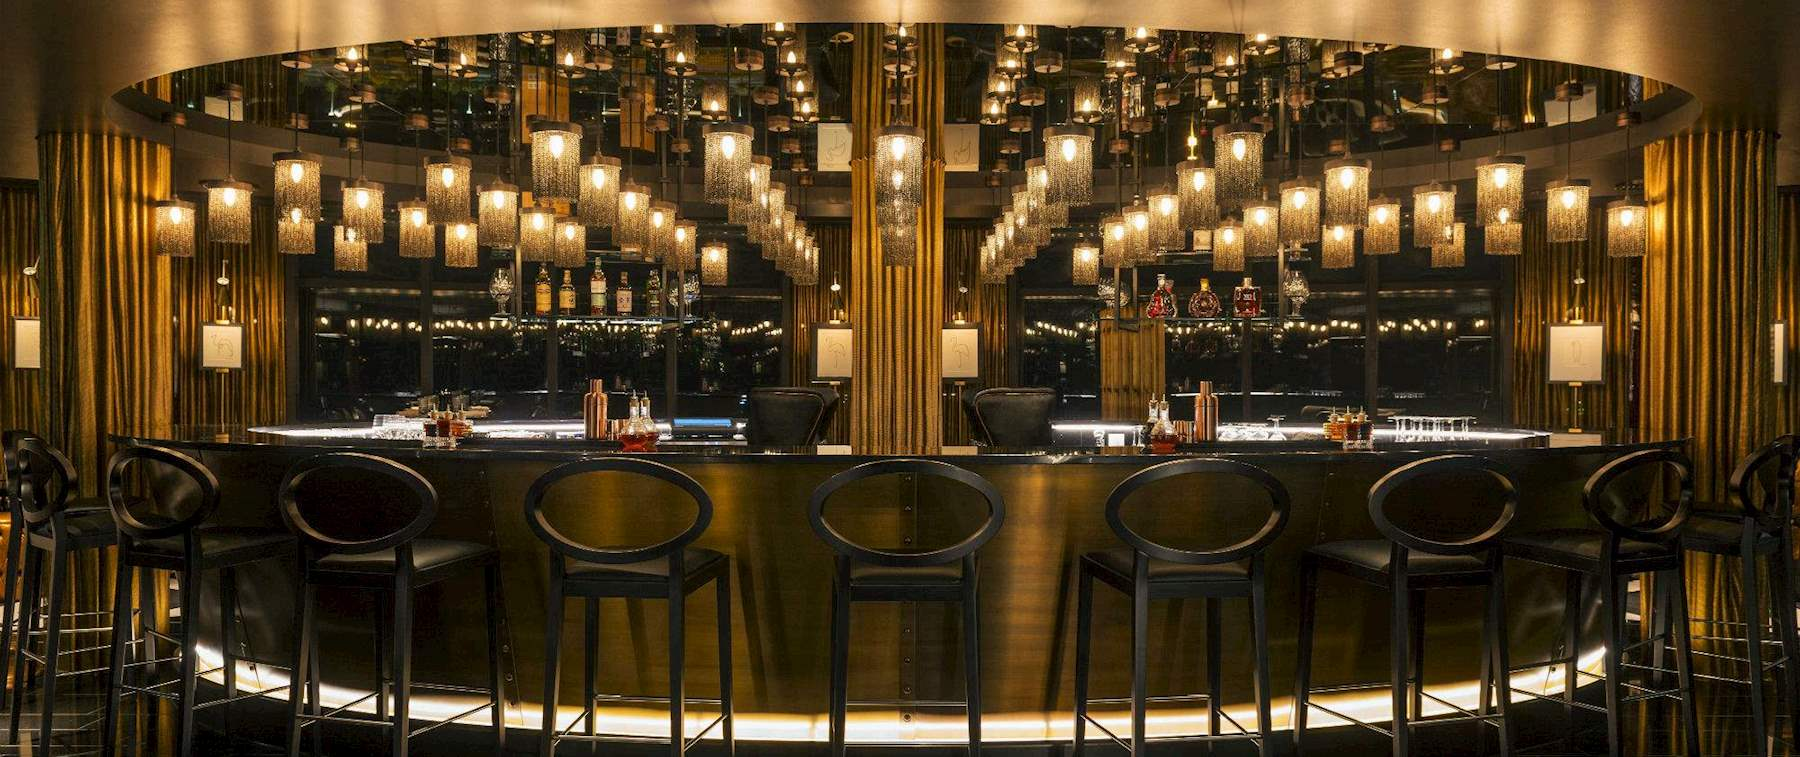 Stratos Revolving Lounge Bar & Grill